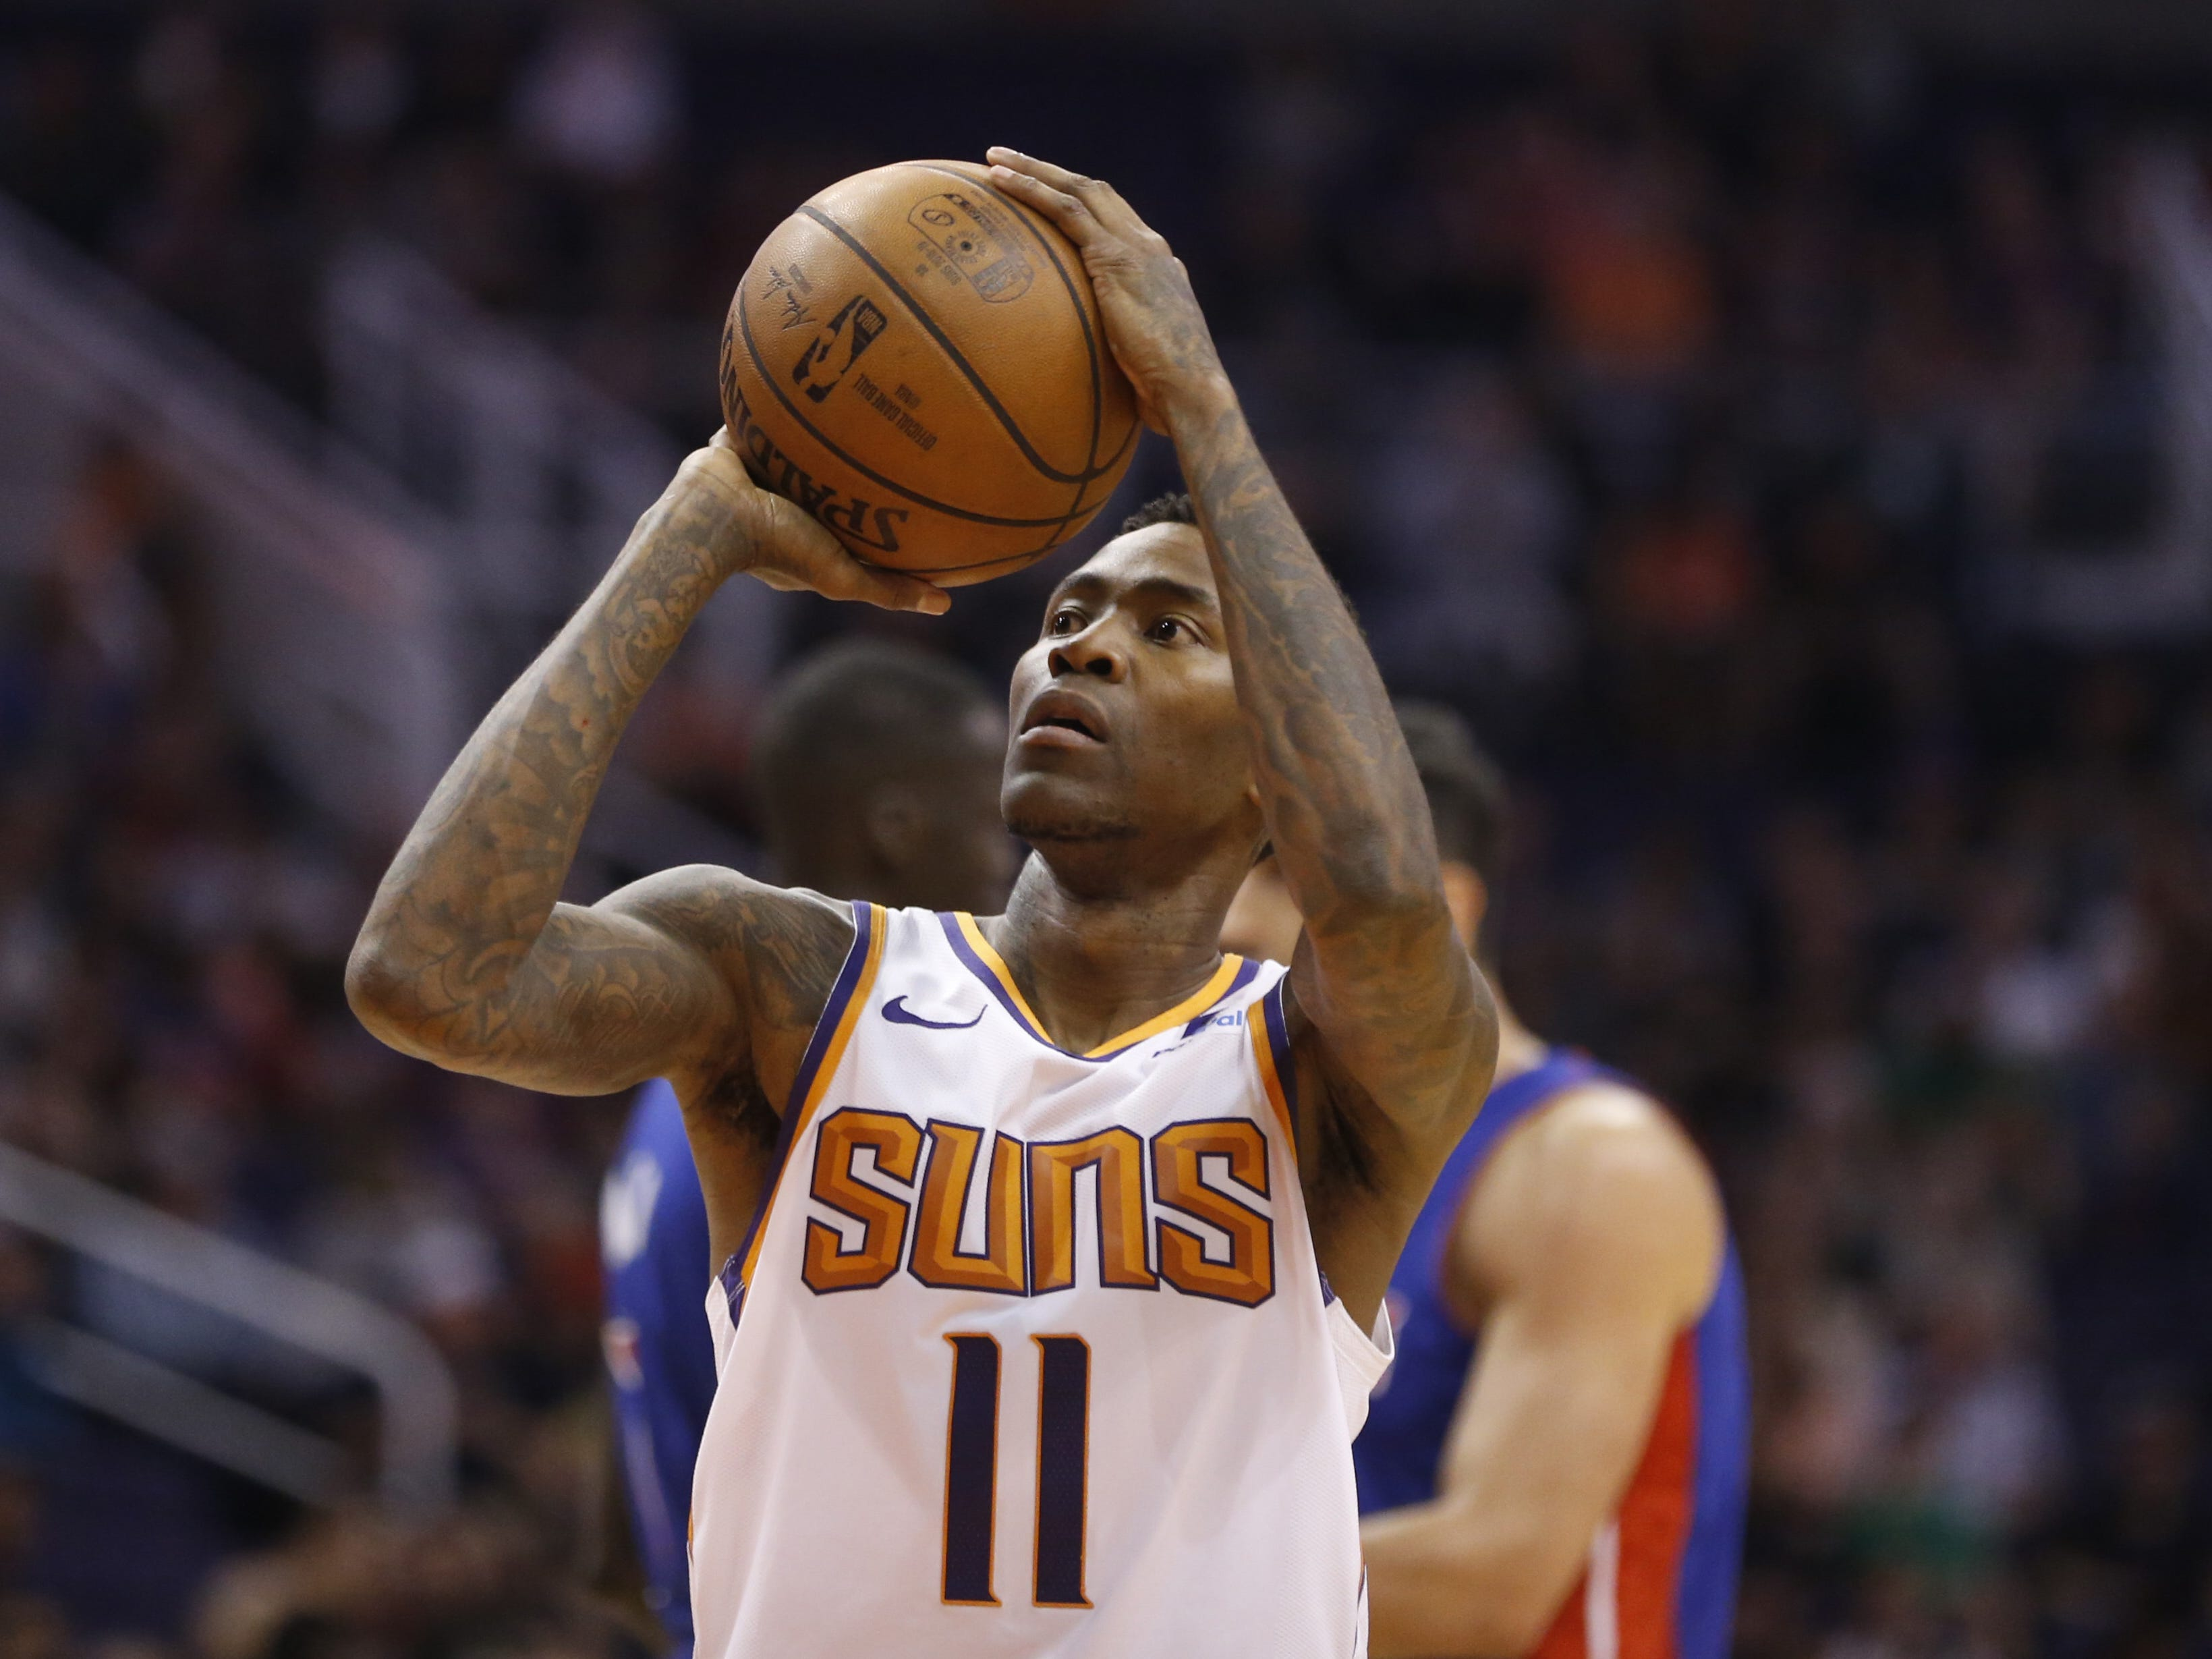 Suns' Jamal Crawford (11) shoots a technical free throw during the first half against the Pistons at the Talking Stick Resort Arena in Phoenix, Ariz. on March 21, 2019.